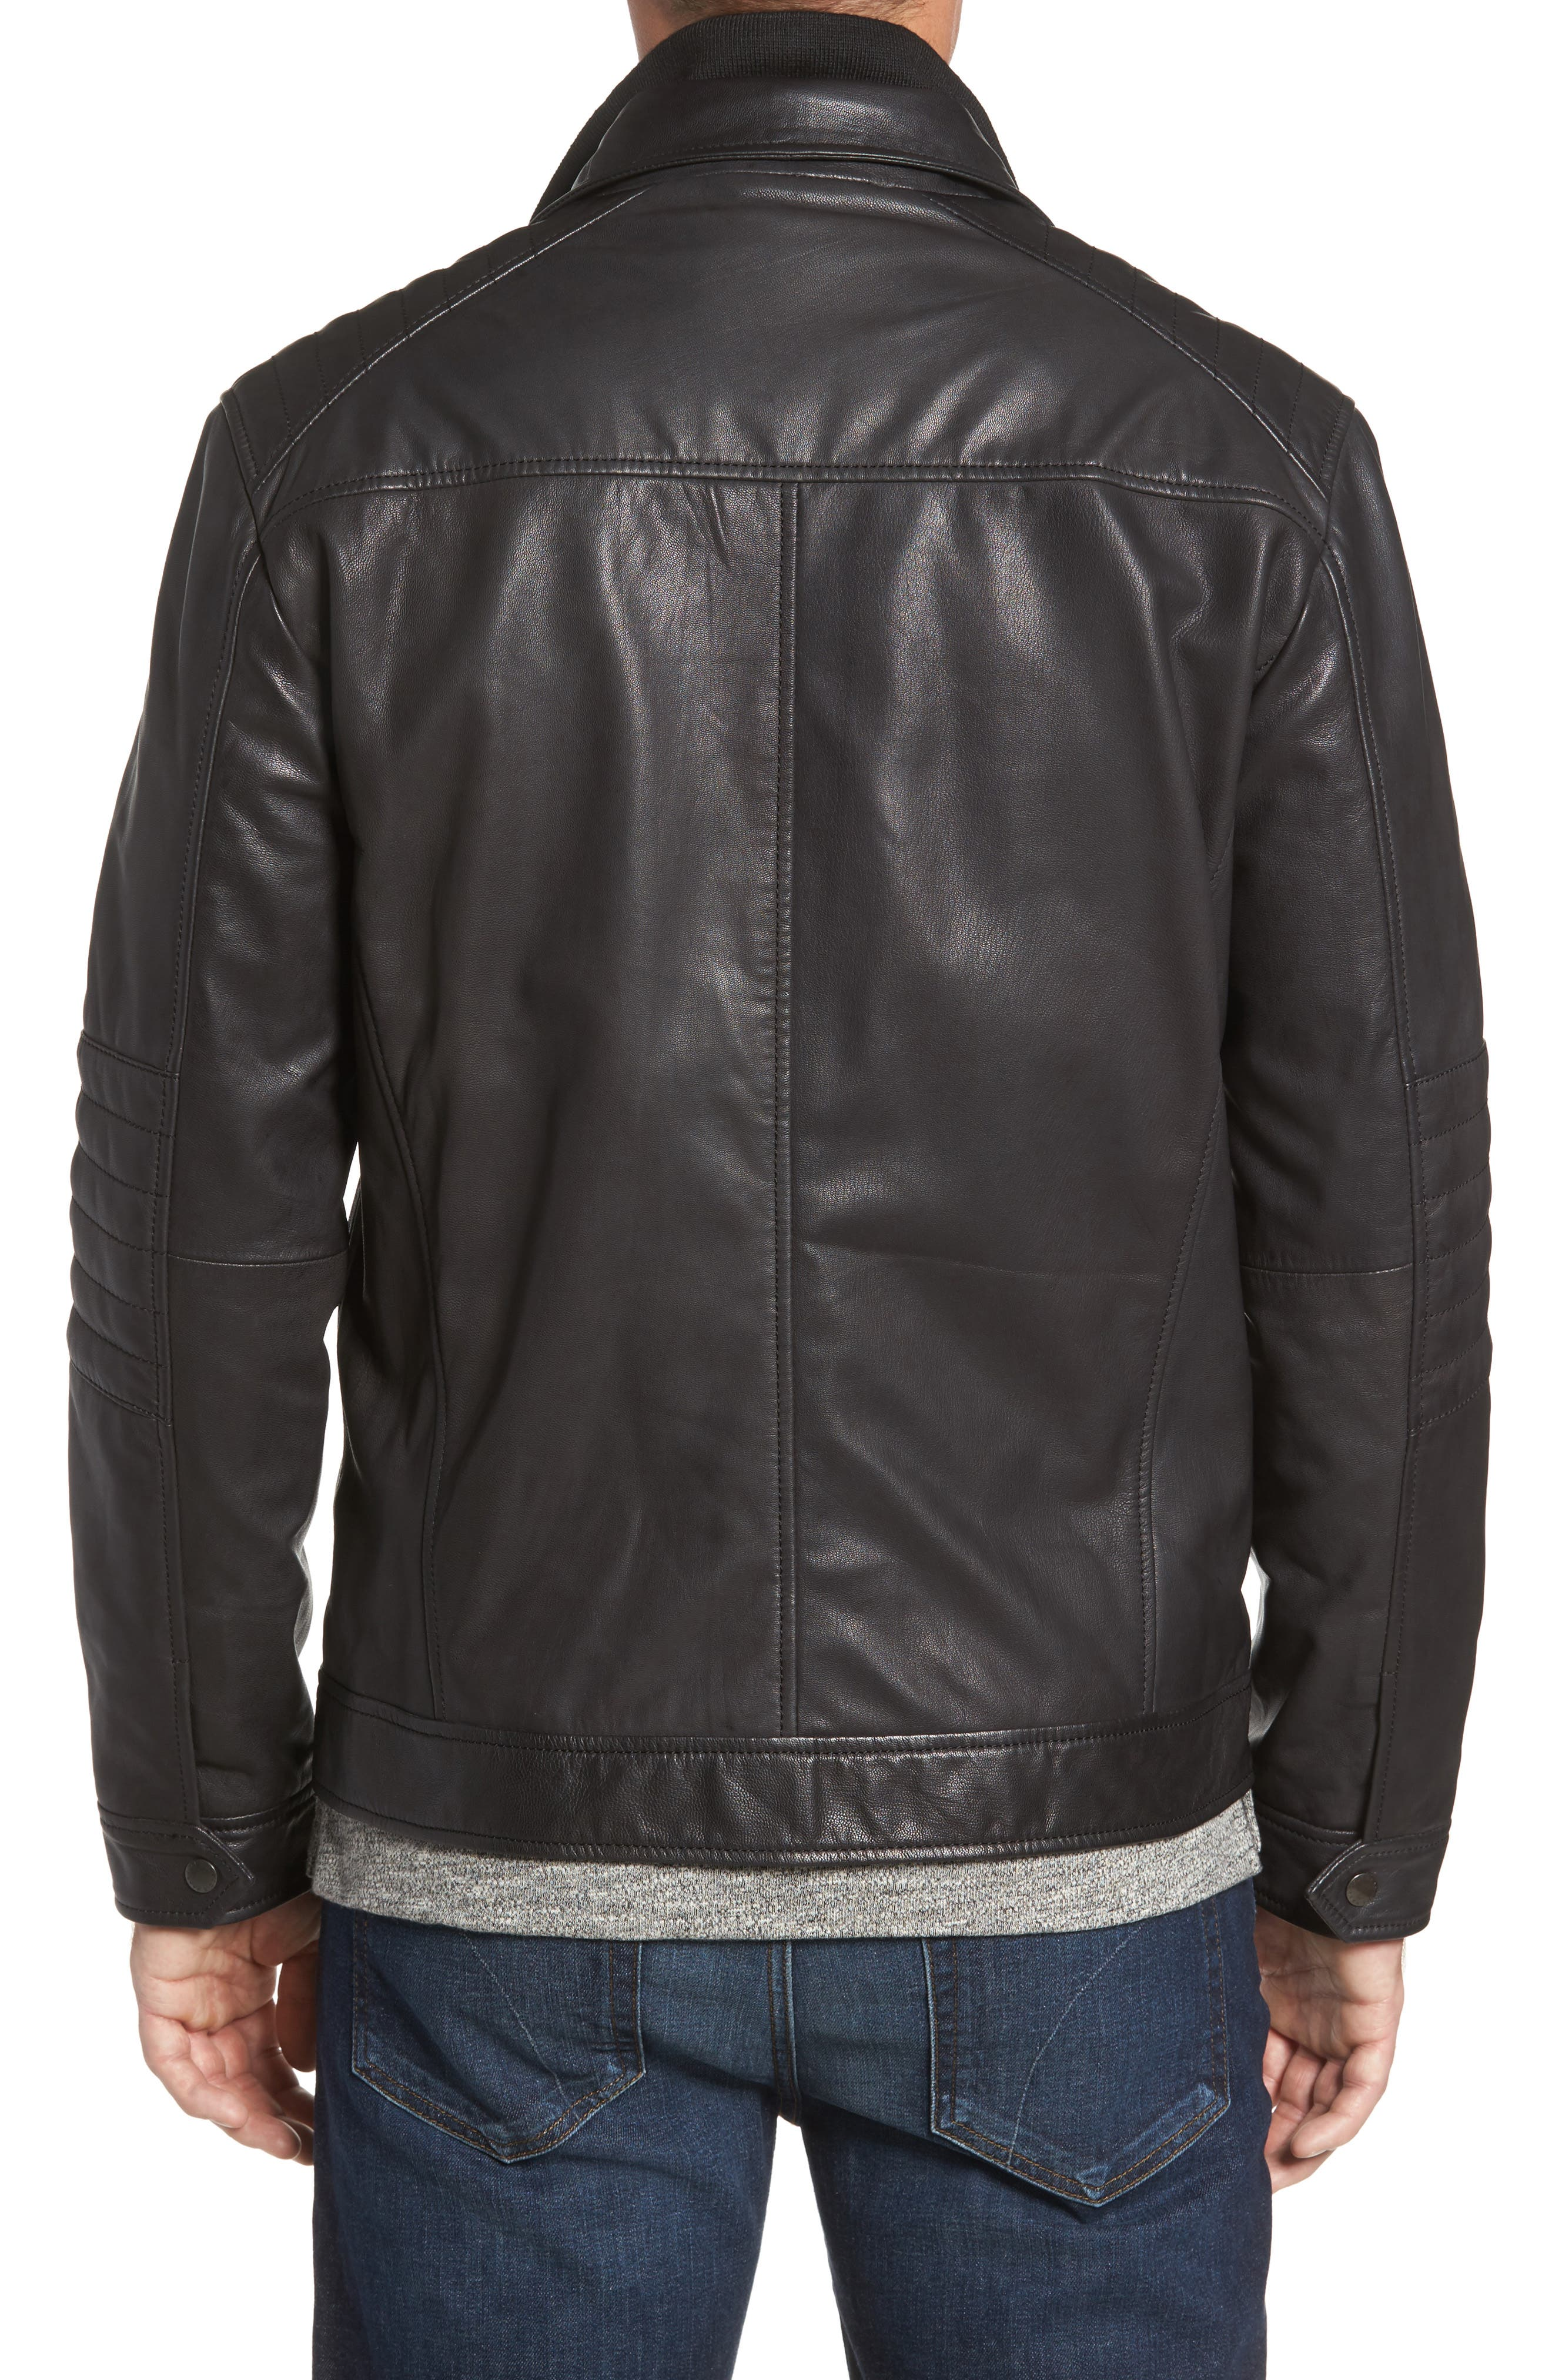 COLE HAAN,                             Washed Leather Moto Jacket with Knit Bib,                             Alternate thumbnail 2, color,                             001